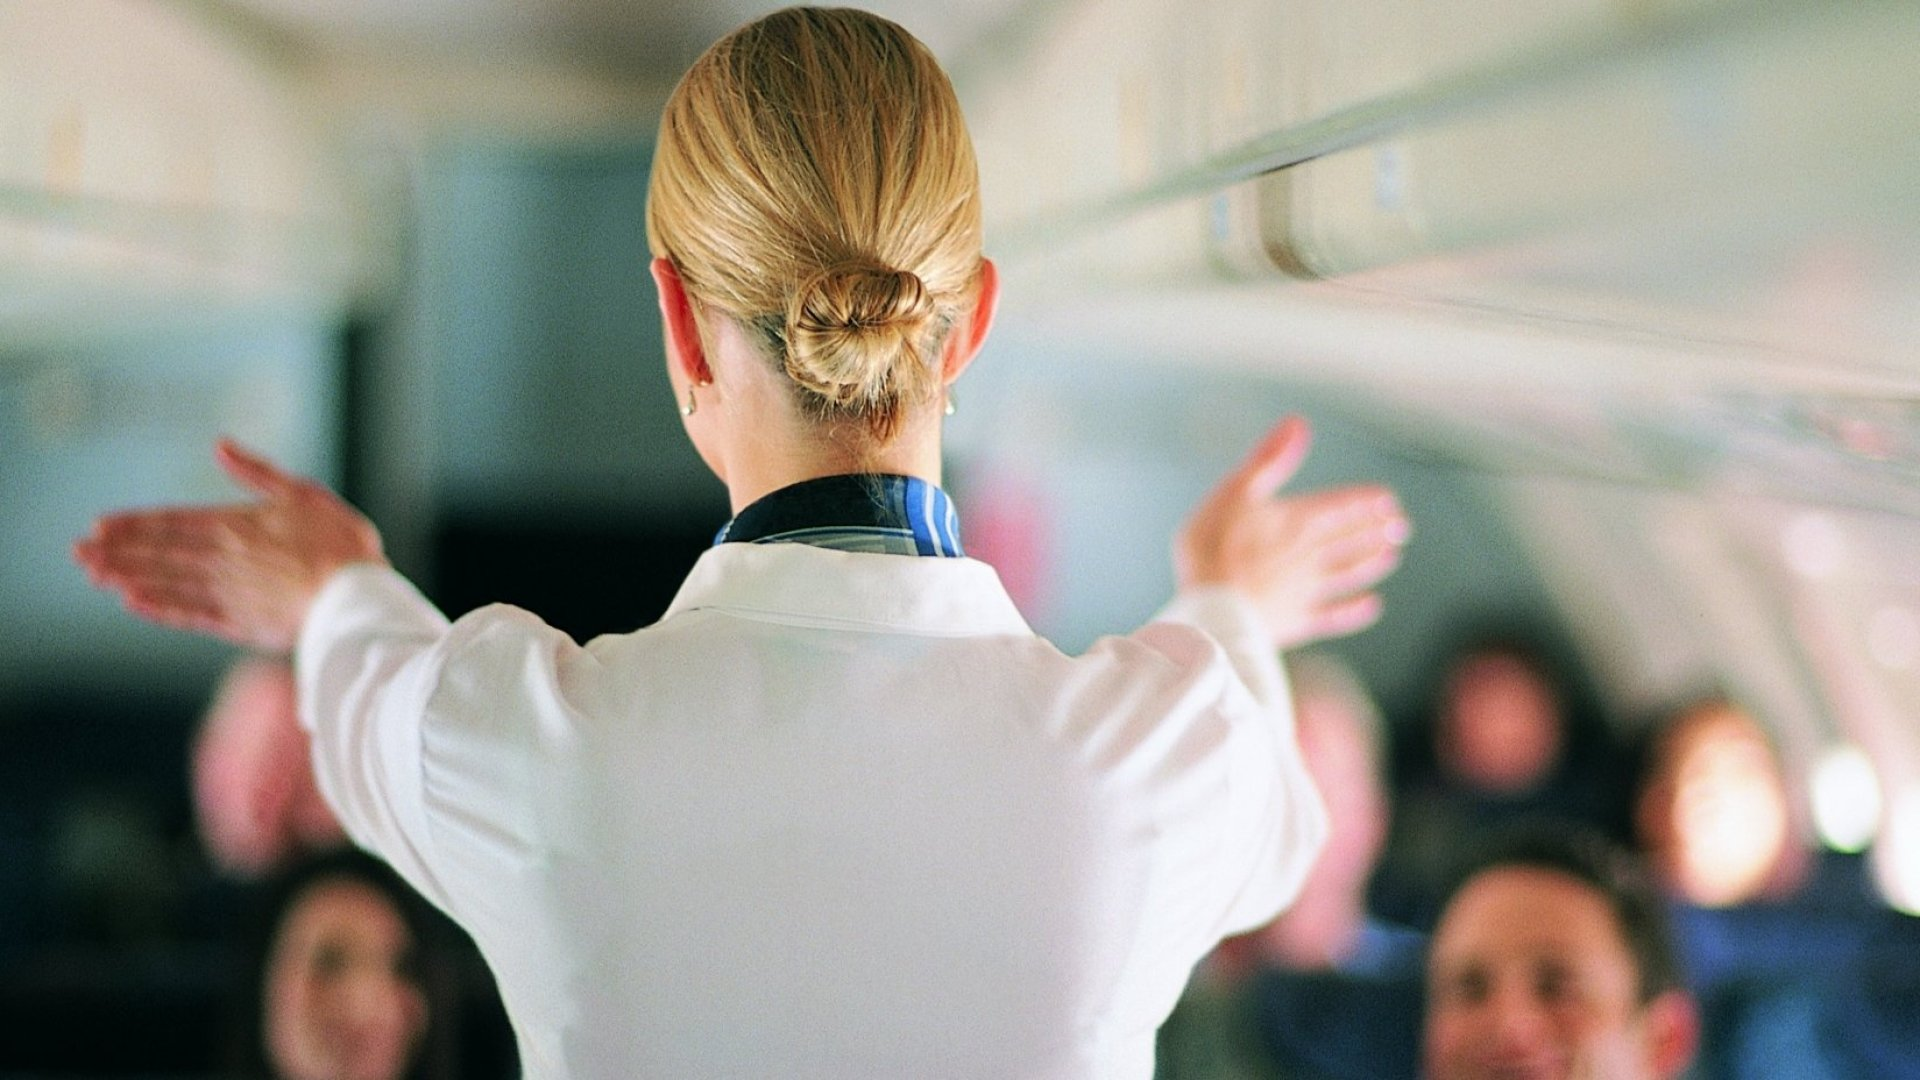 Is there sexism in the airline industry?